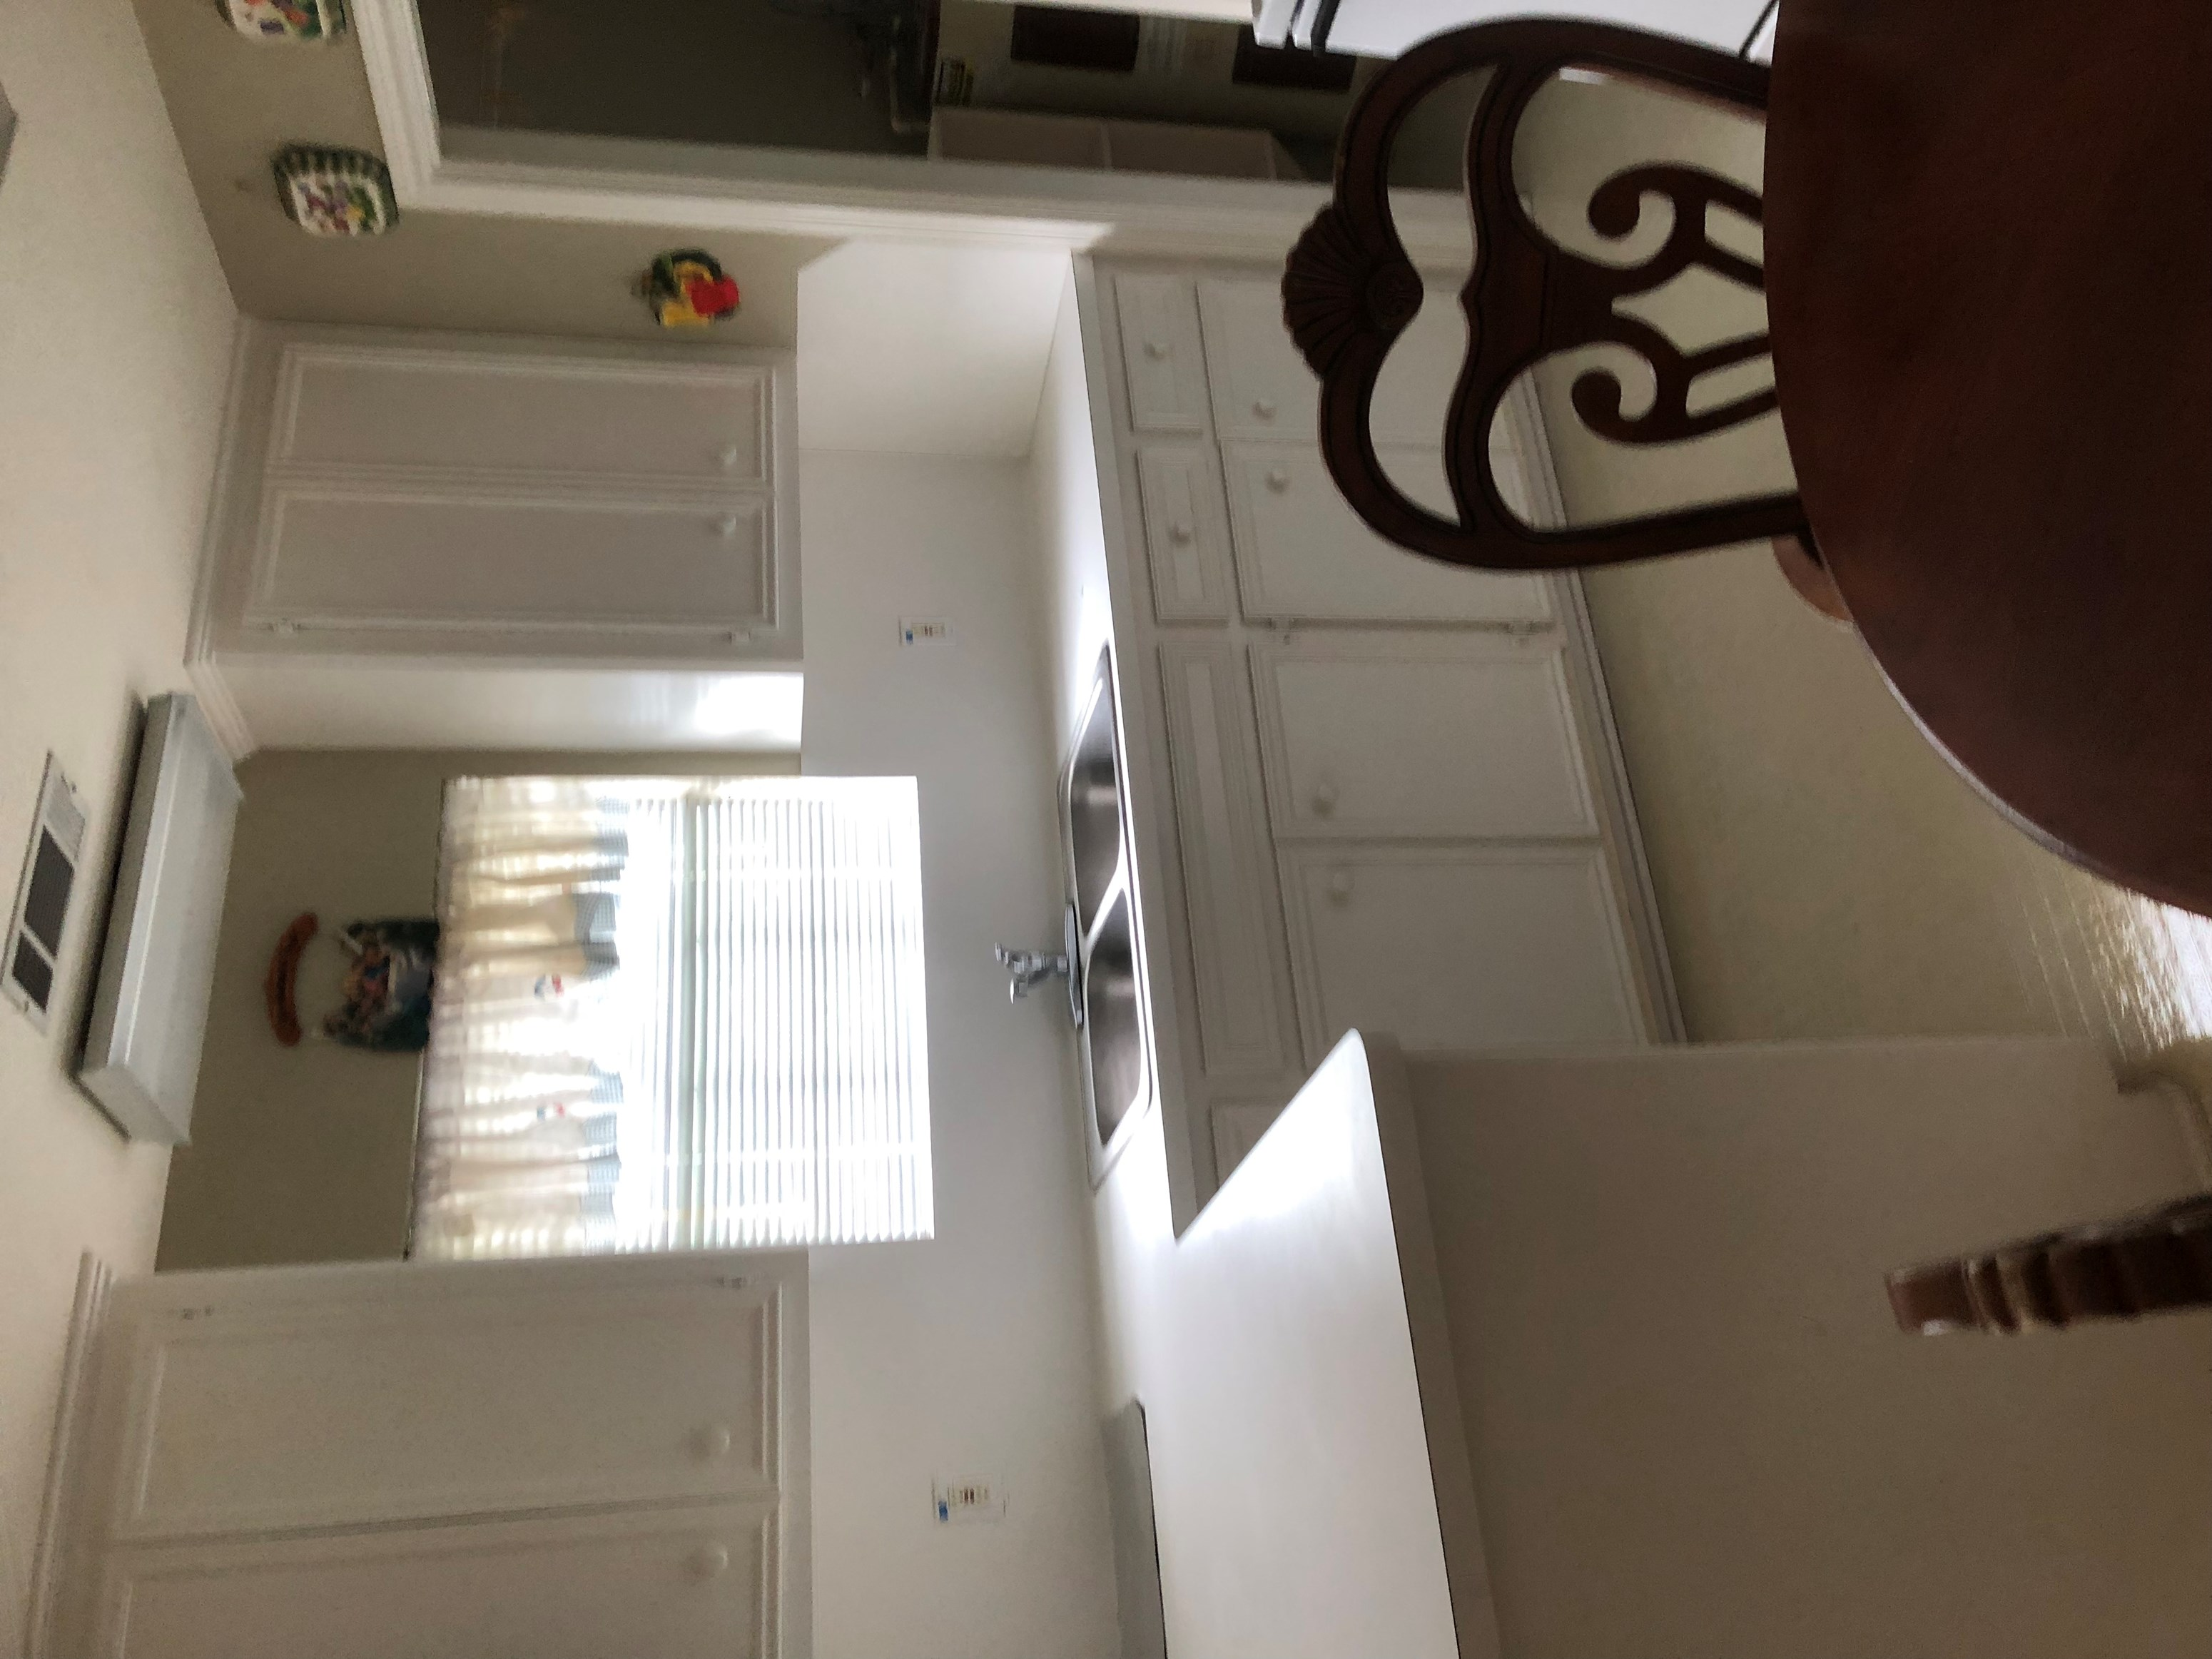 Garage Apartments For Rent Grapevine Tx 1 Bedroom Apartment For Rent In Houston Single Bedroom Apartment